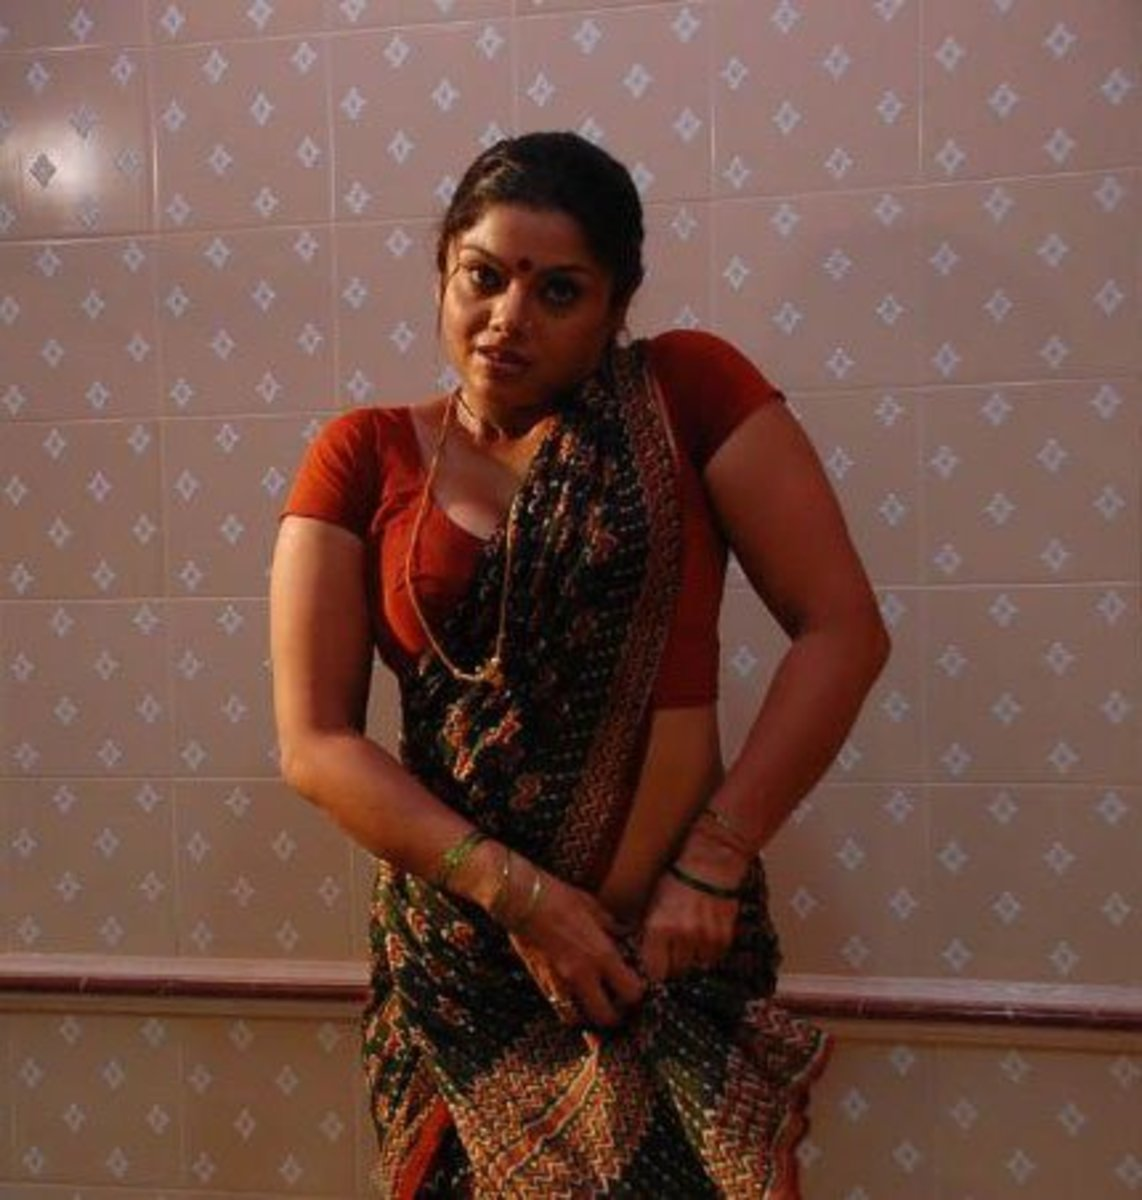 Swathi getting ready for the job